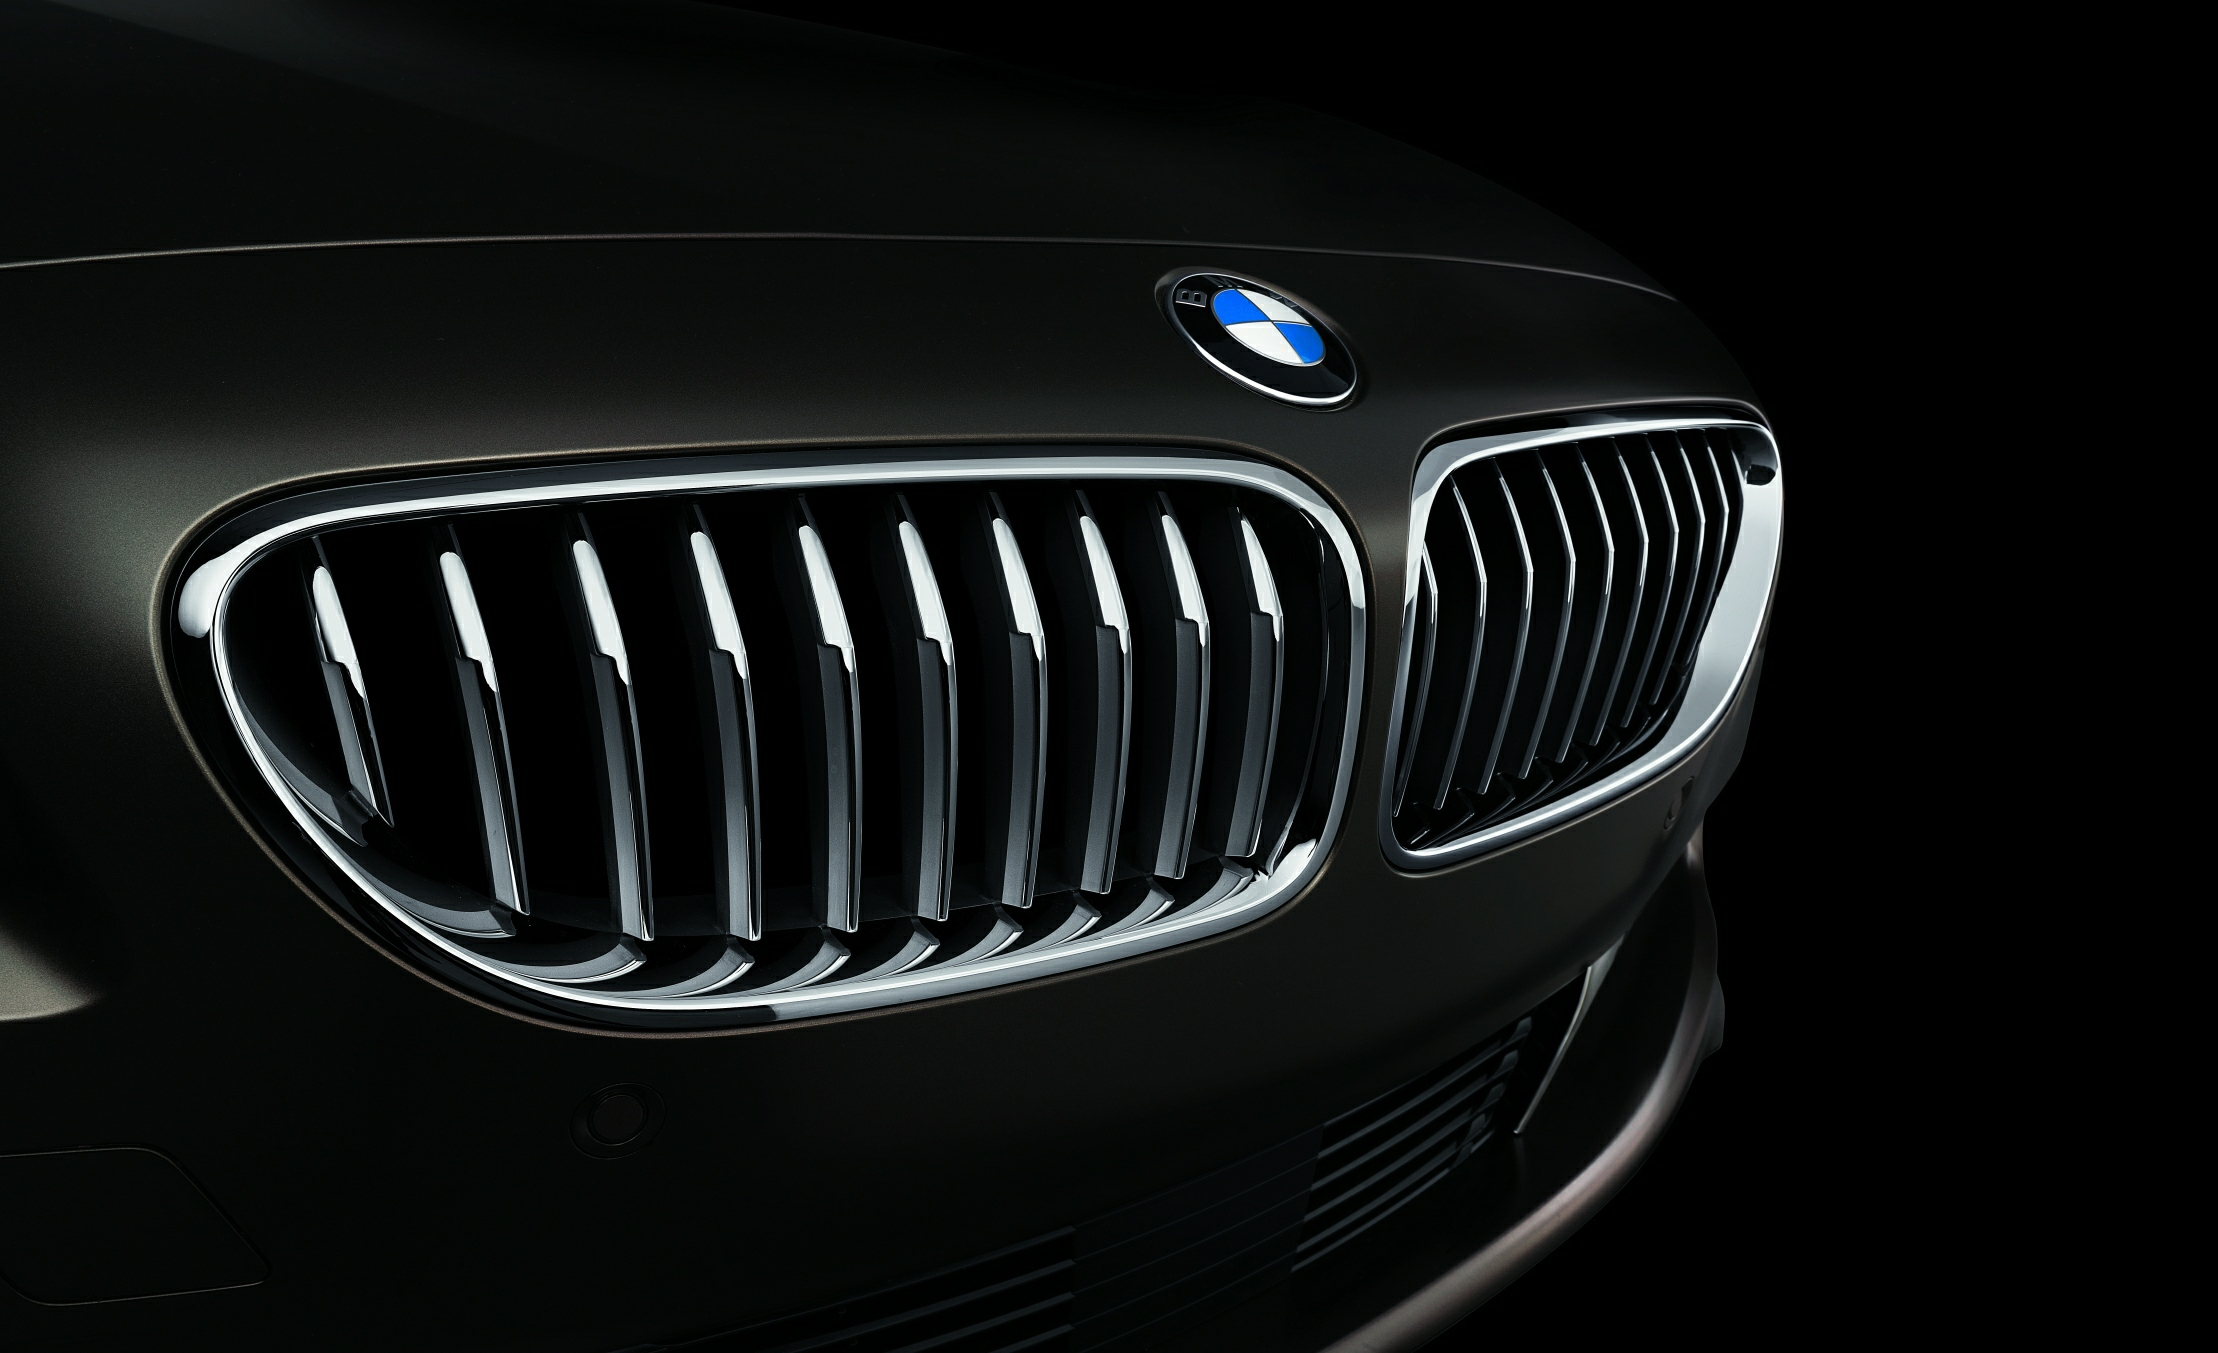 10 Things You Didn't Know About BMW | Kidney grills